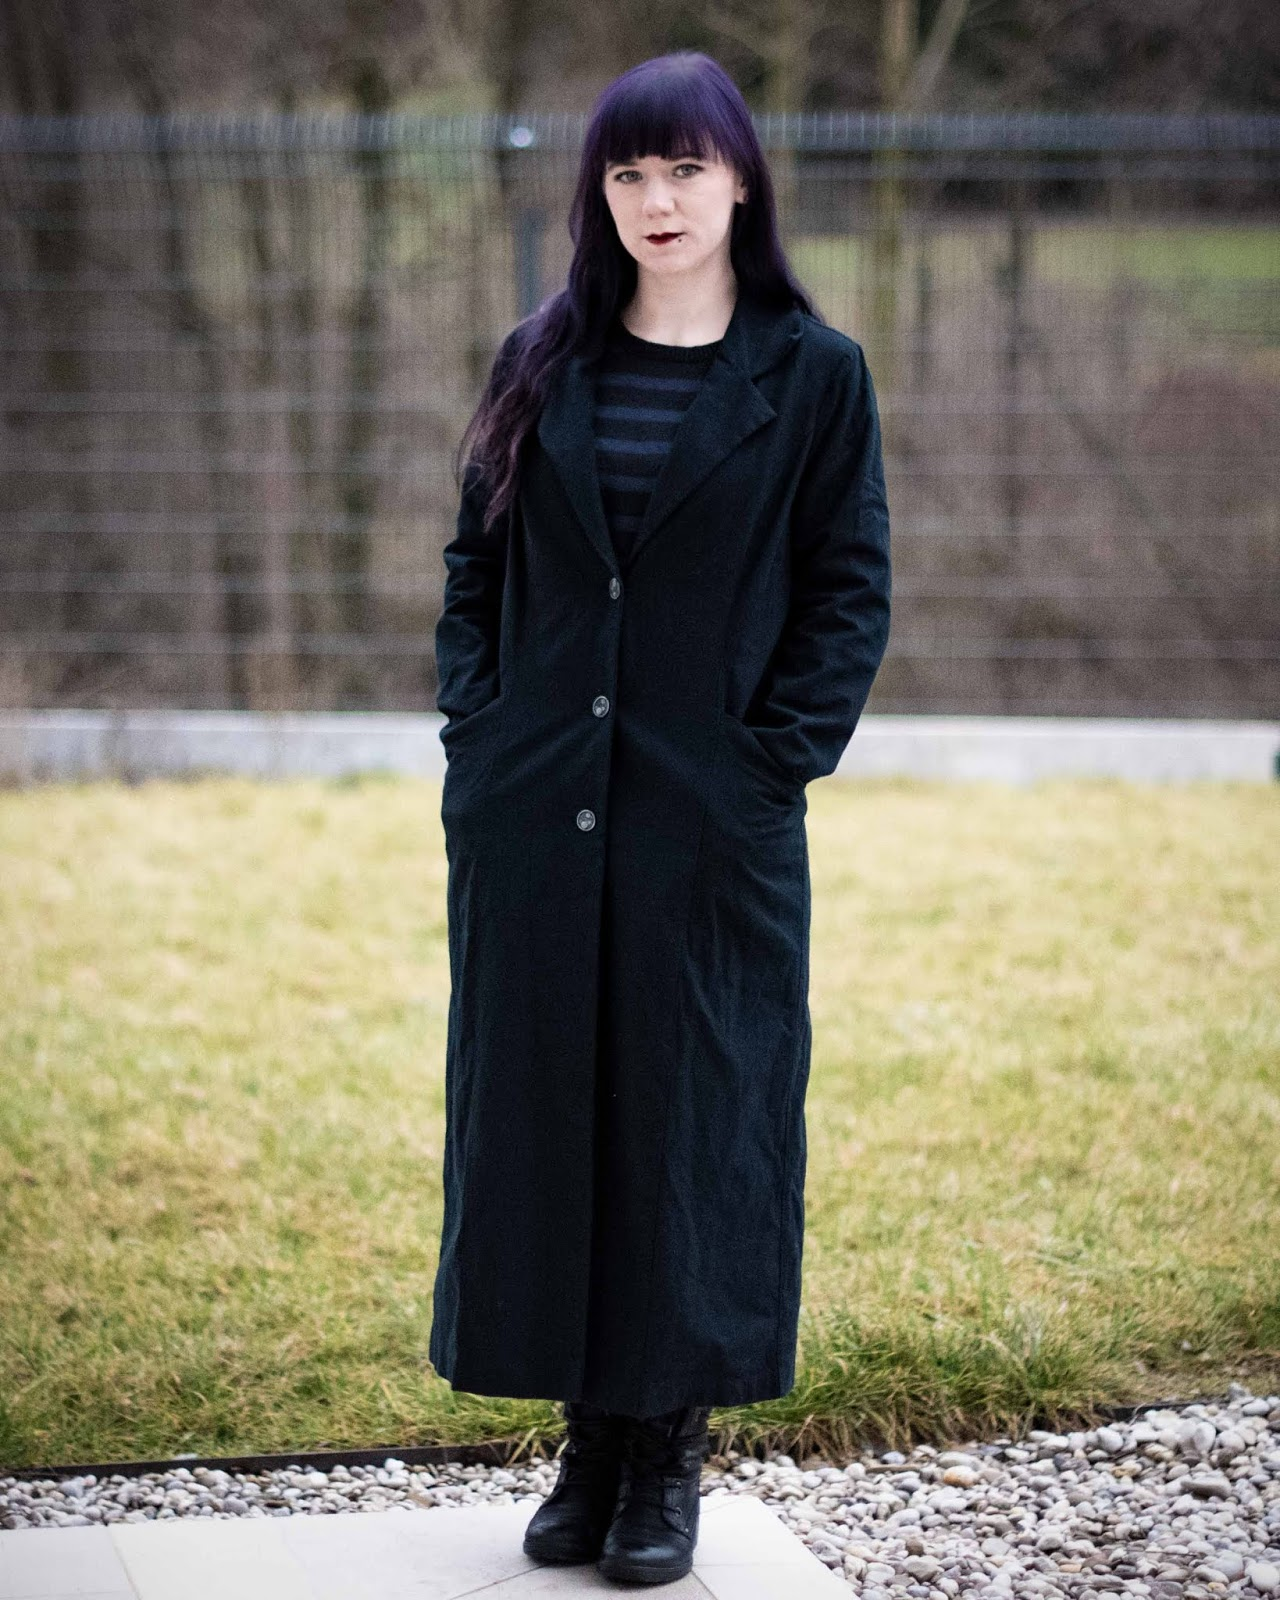 Minn's Things sewing By Hand London's Rumana Coat pattern diy gothic black winter clothes selfmade